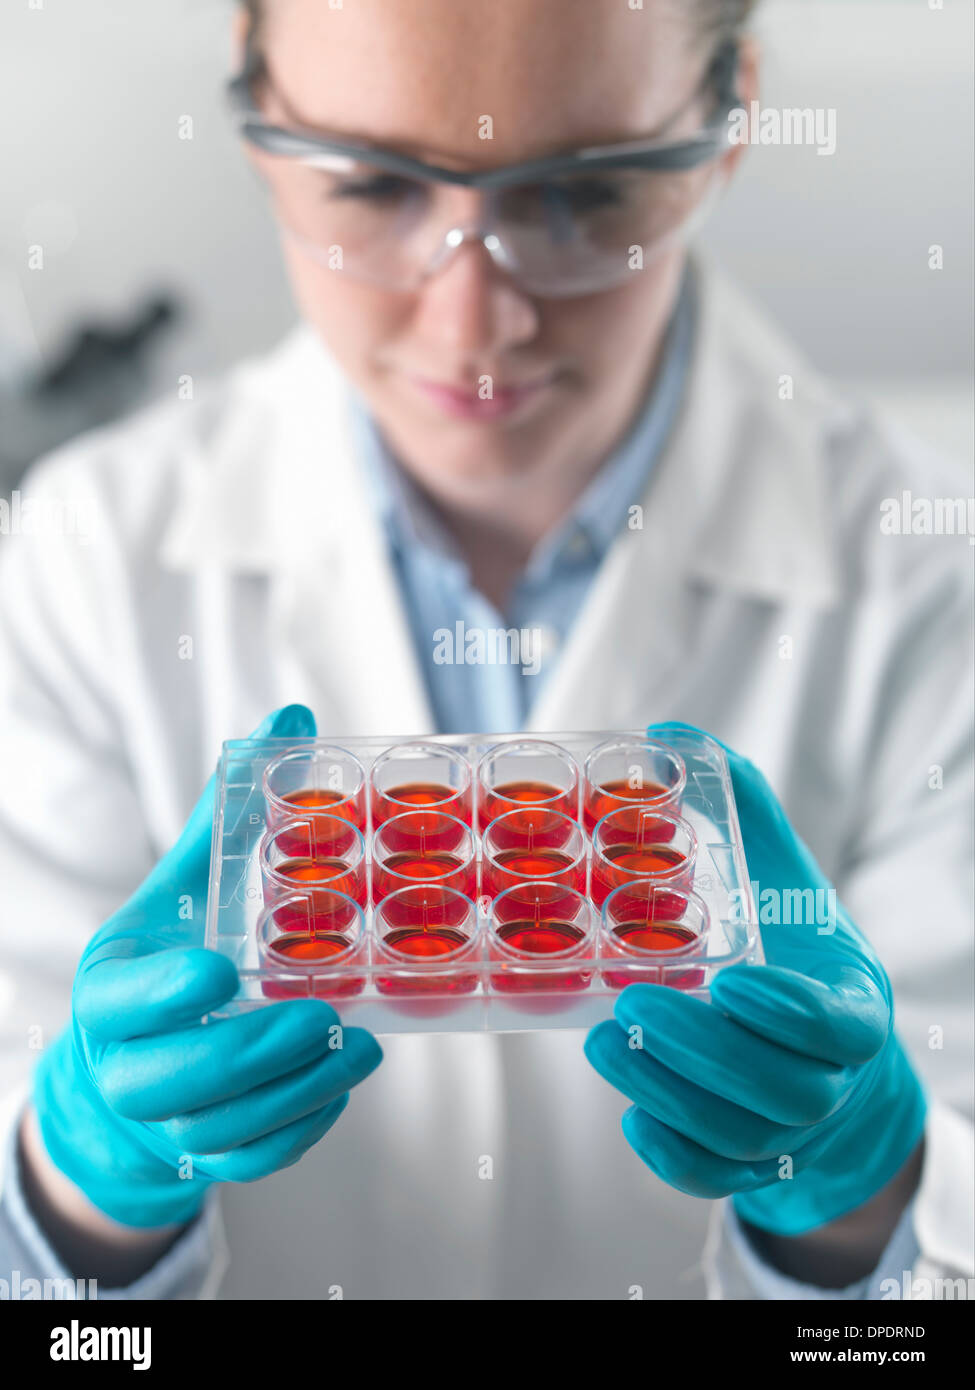 Female scientist examining stem cell cultures in laboratory - Stock Image